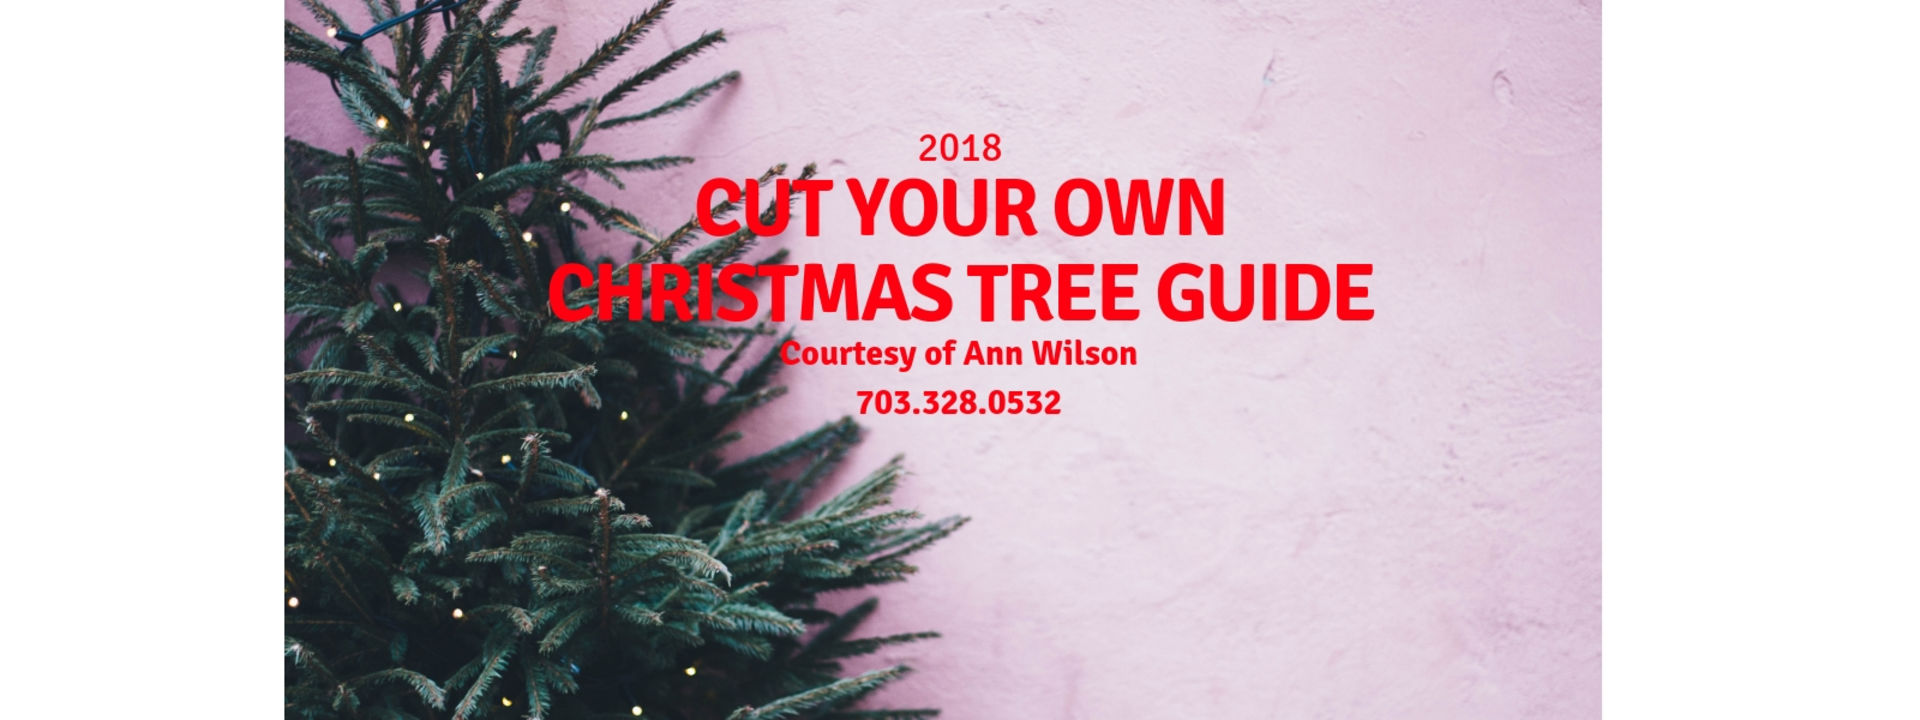 Cut Your Own Christmas Tree Guide